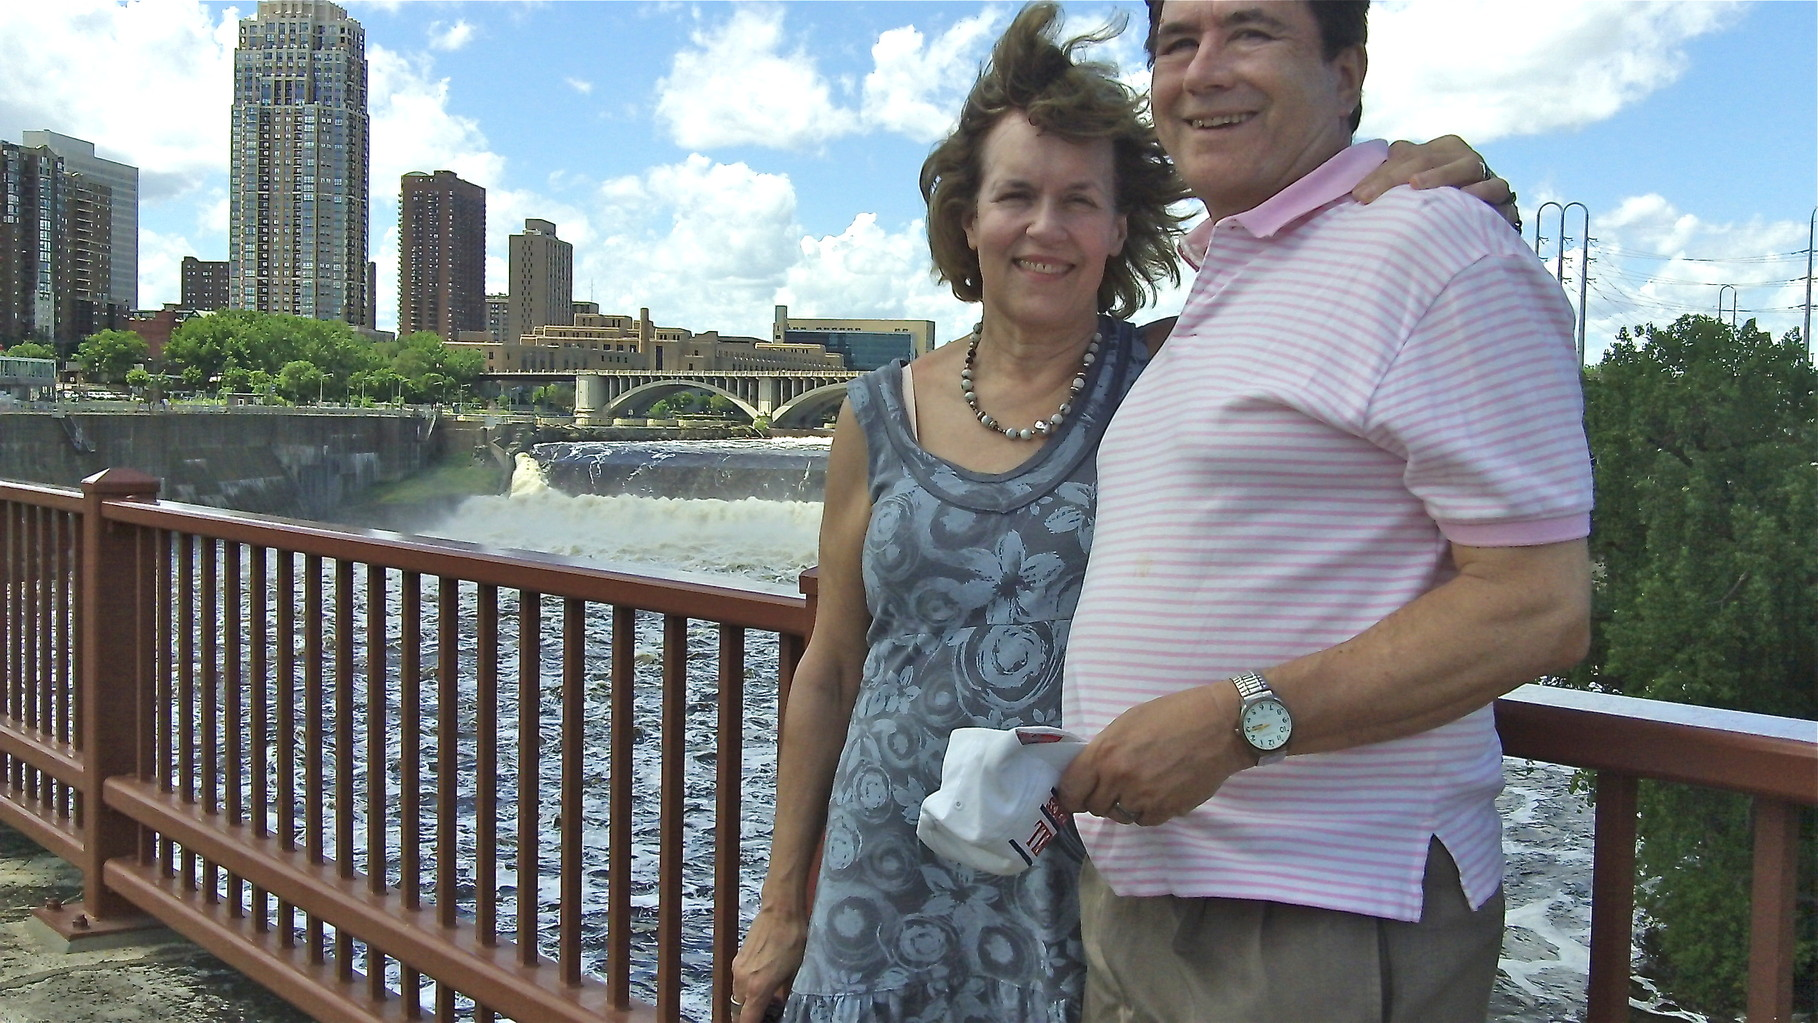 Lorraine & John on the Stone Arch Bridge, Mississippi River, downtown Minneapolis